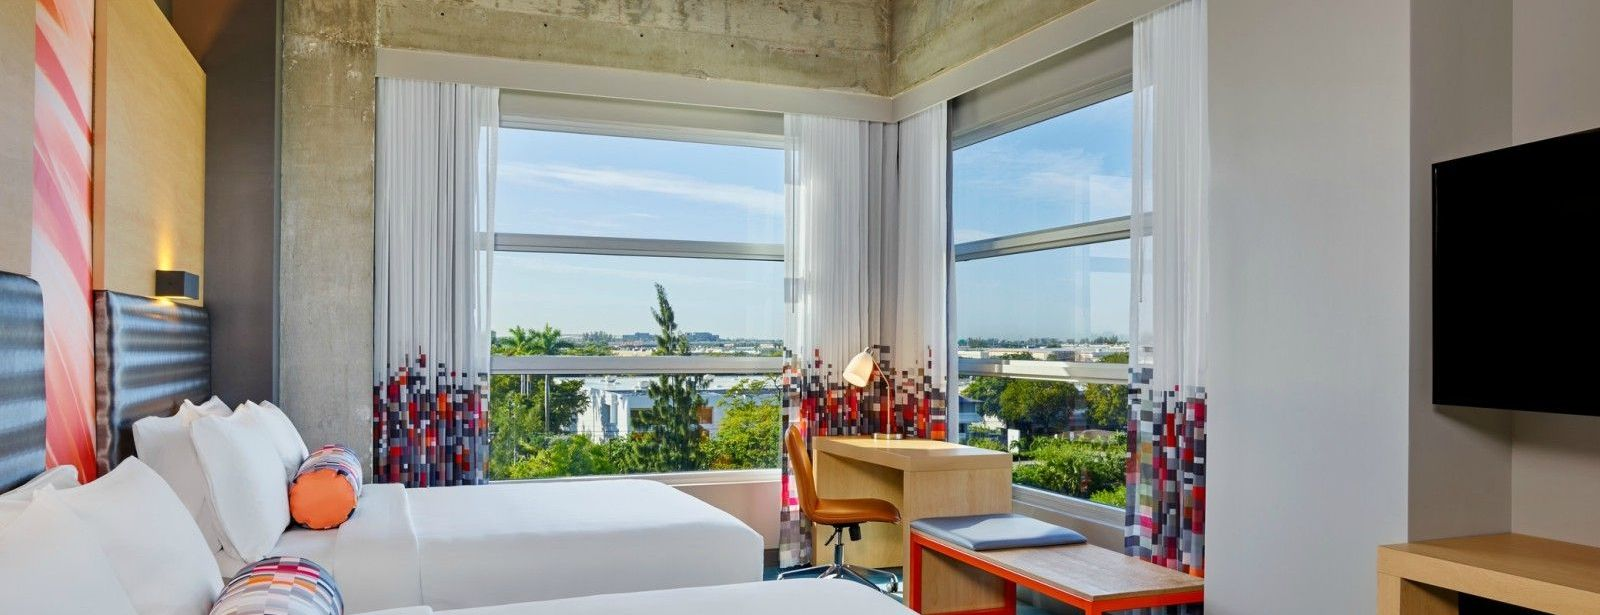 Miami Airport Accommodations - Accessible Room